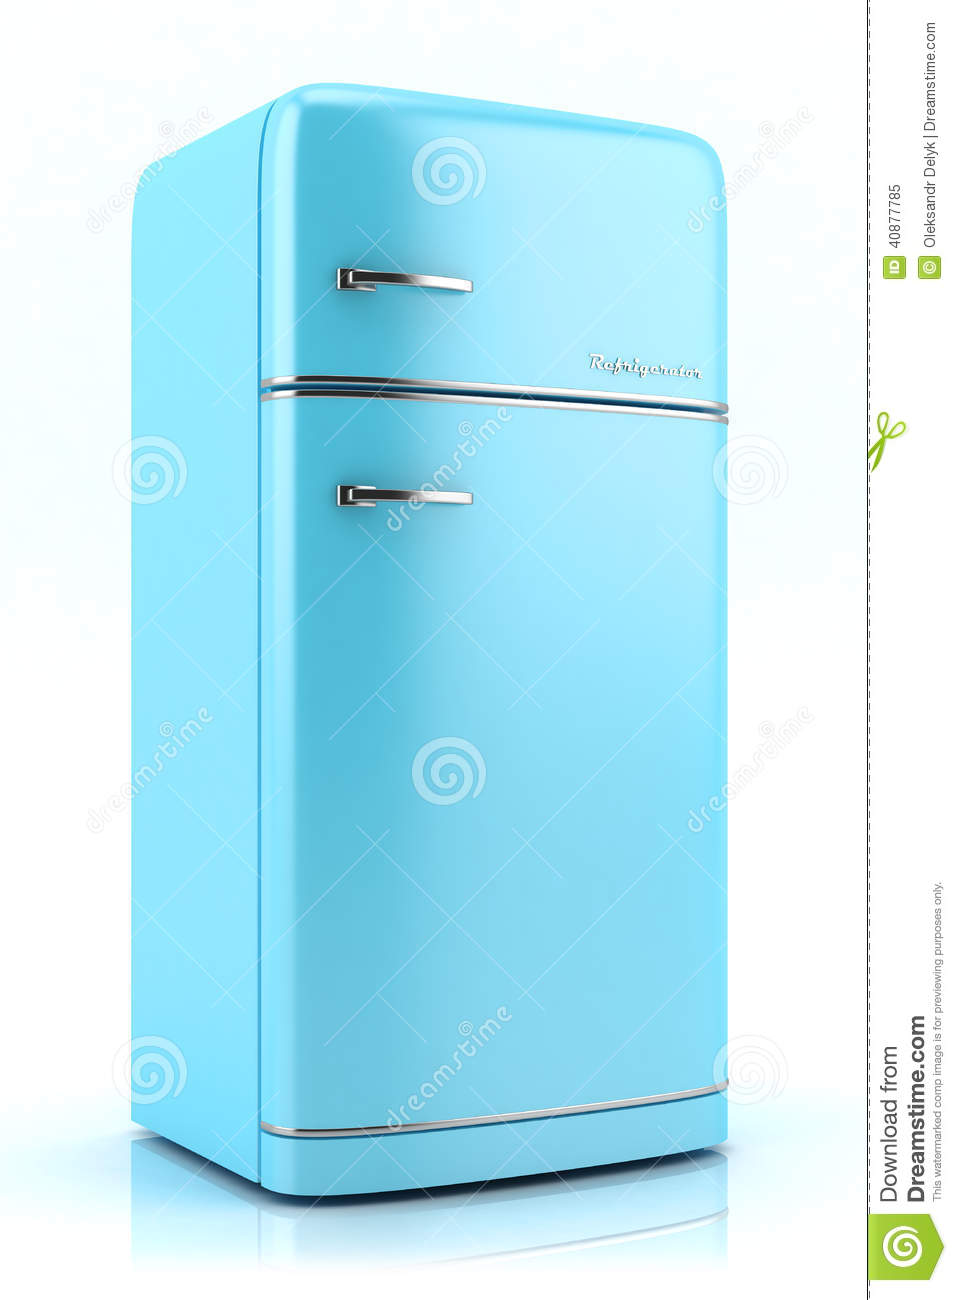 Frigo Retro Gorenje Gorenje Retro Collection Gorenje Gorenje And